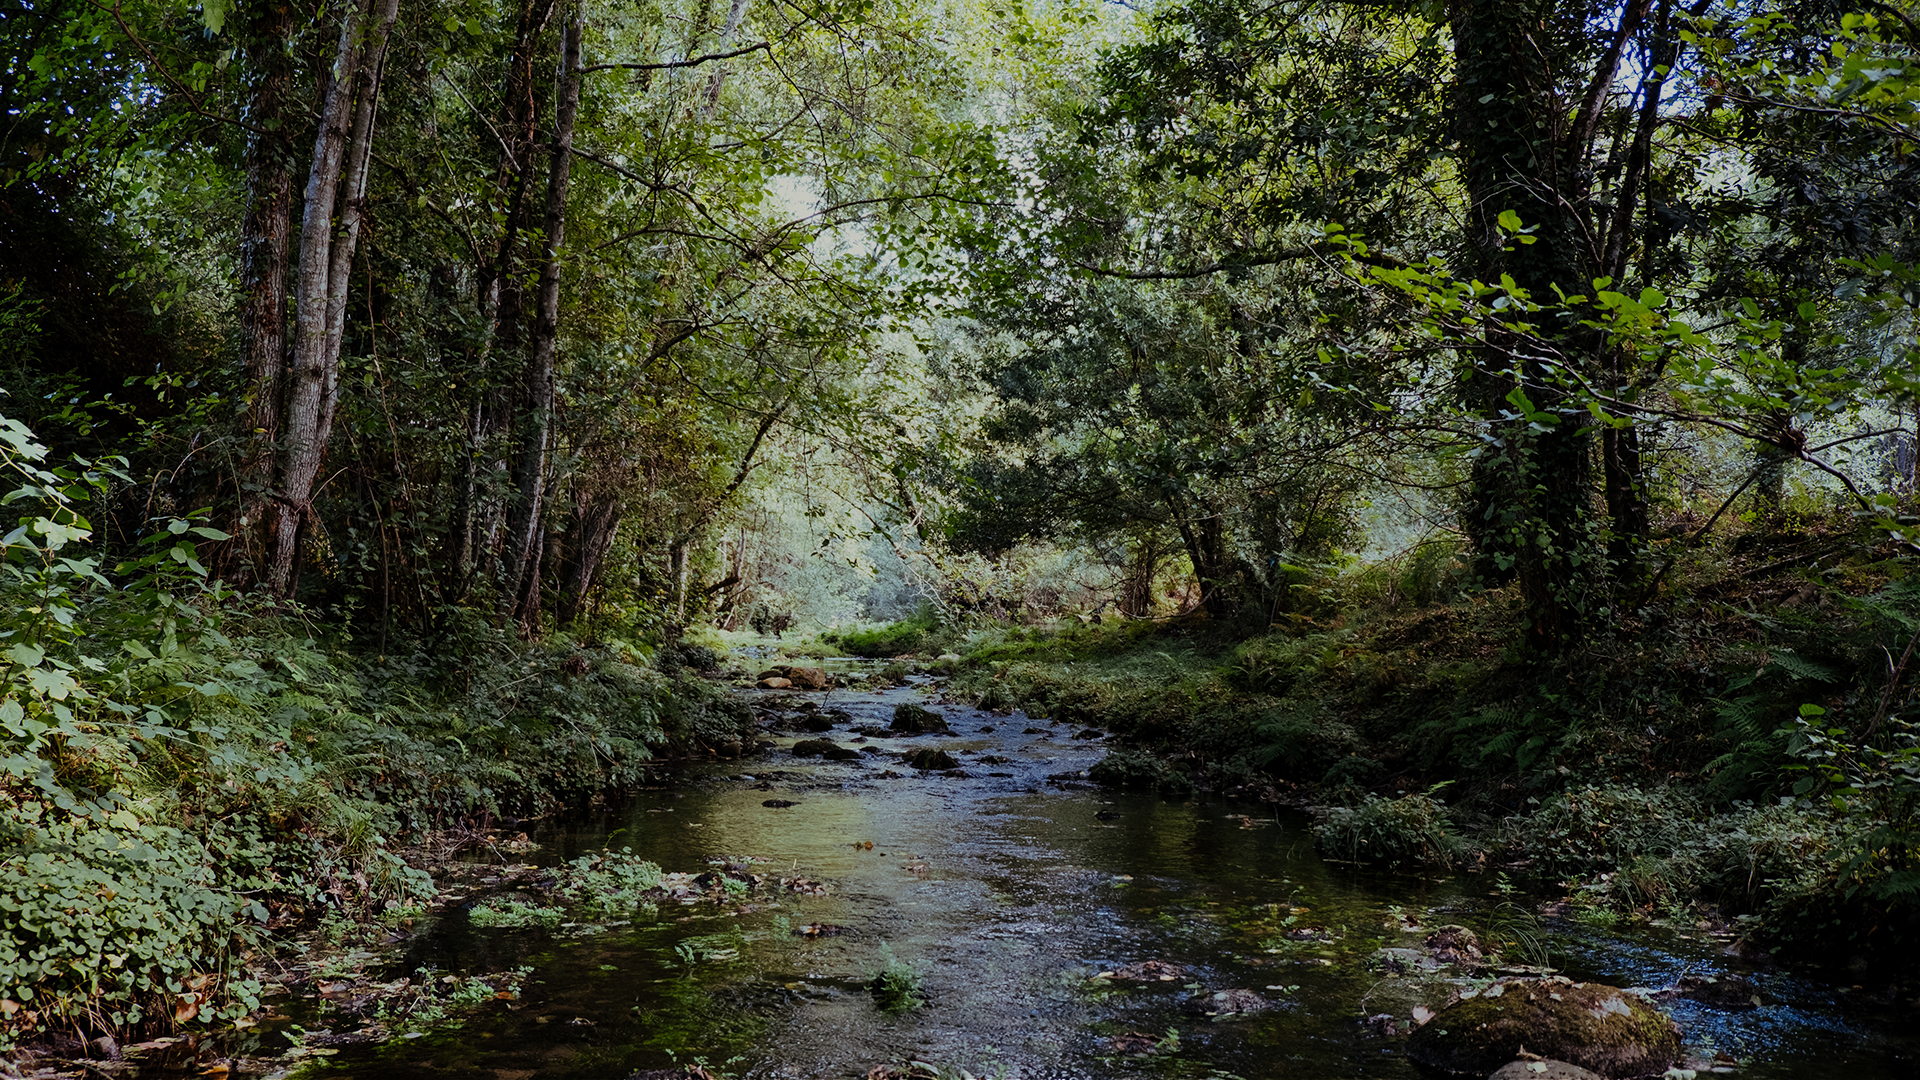 image looking downstream in a stream with large trees on either side